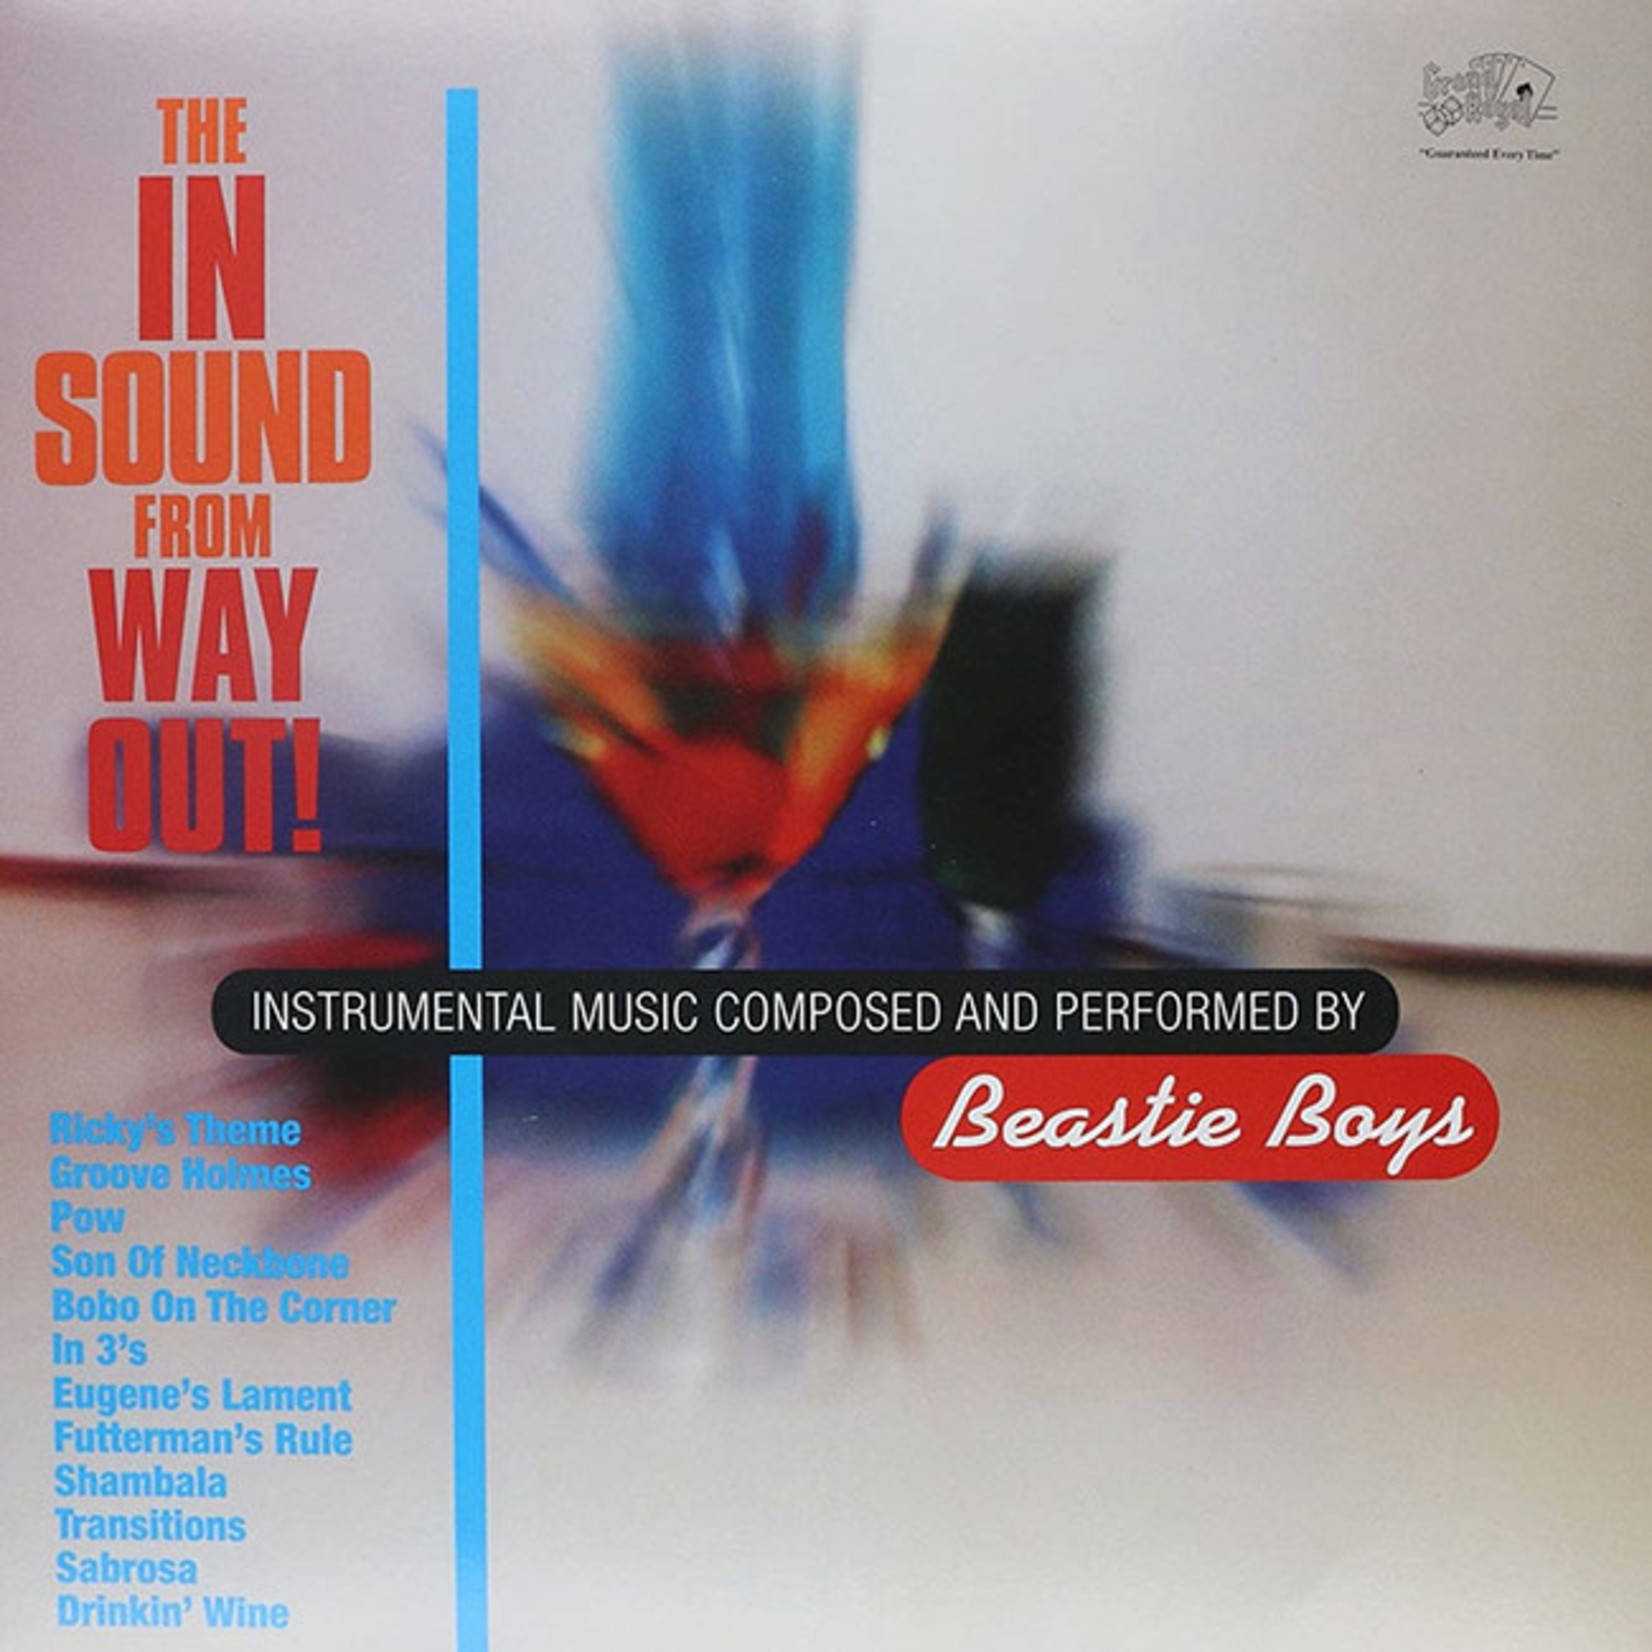 [New] Beastie Boys: The In Sound From Way Out!